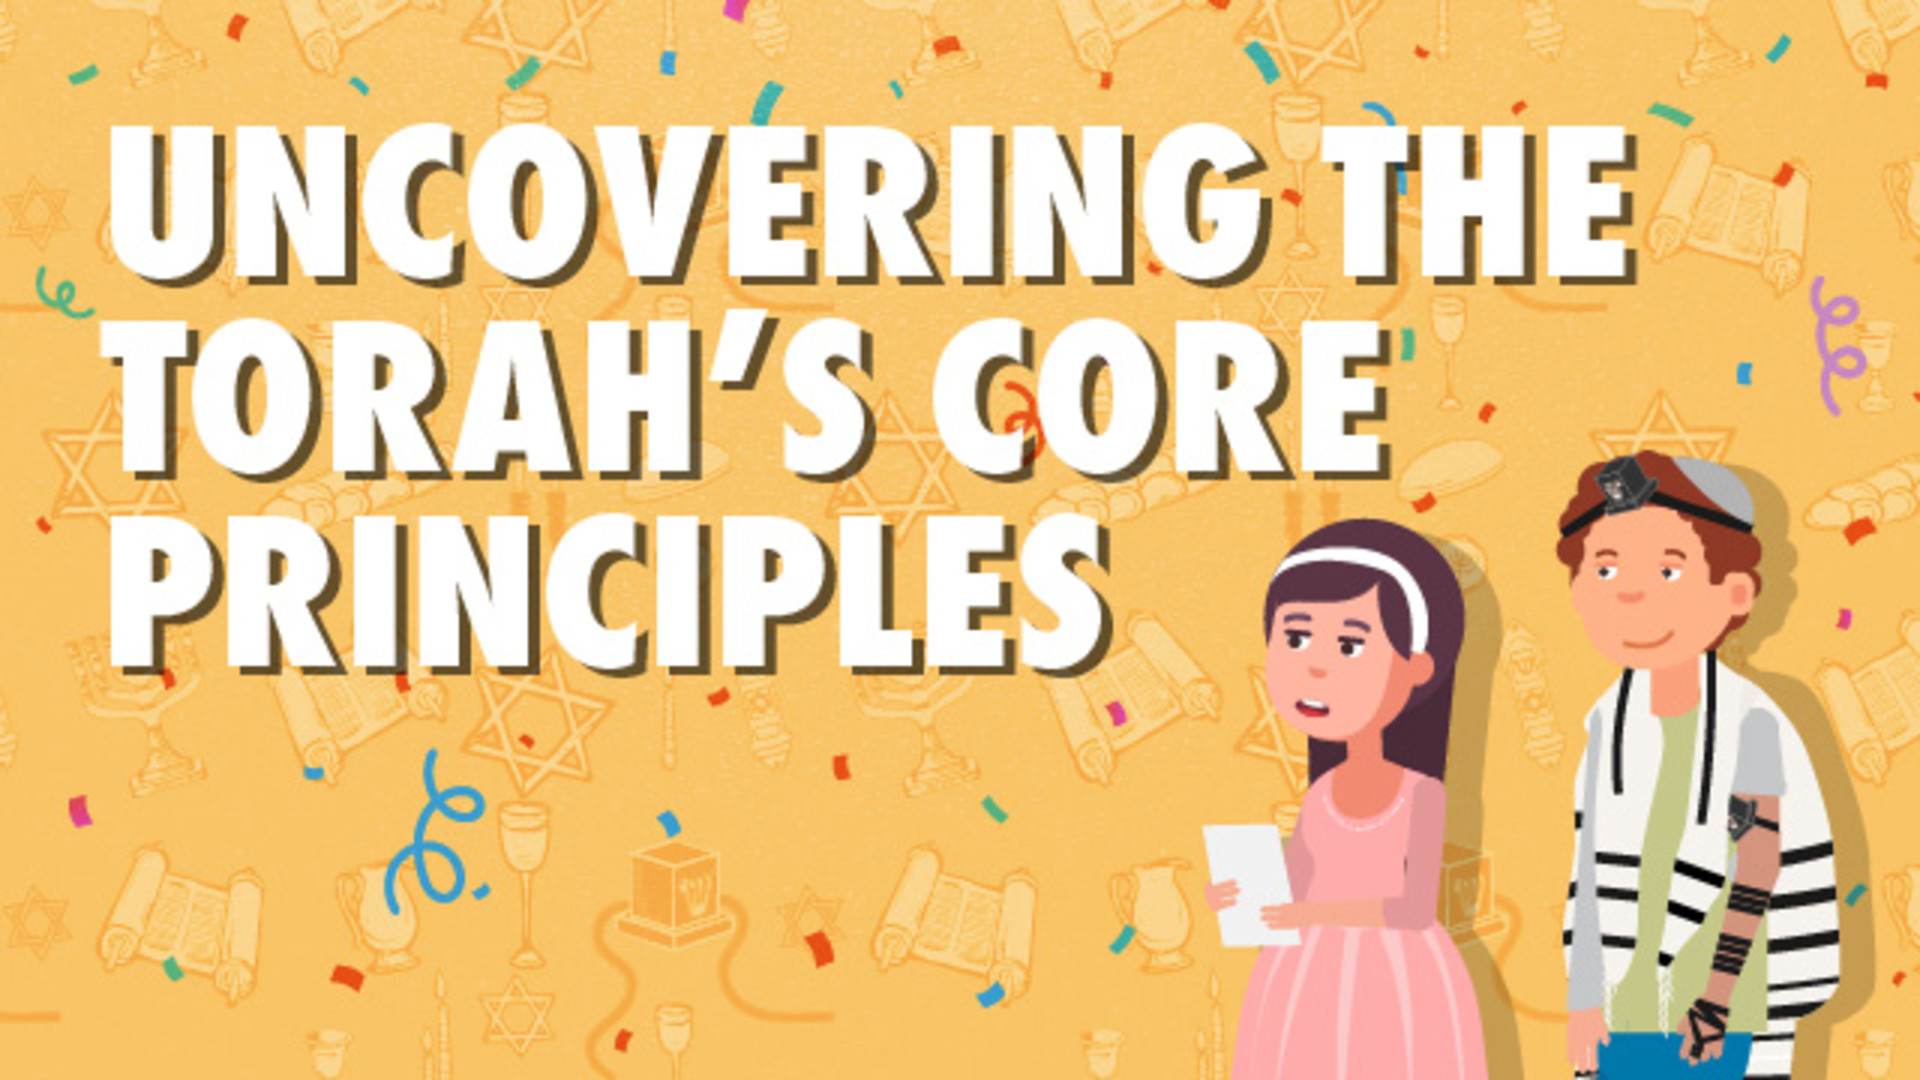 Uncovering the Torah's Core Principles